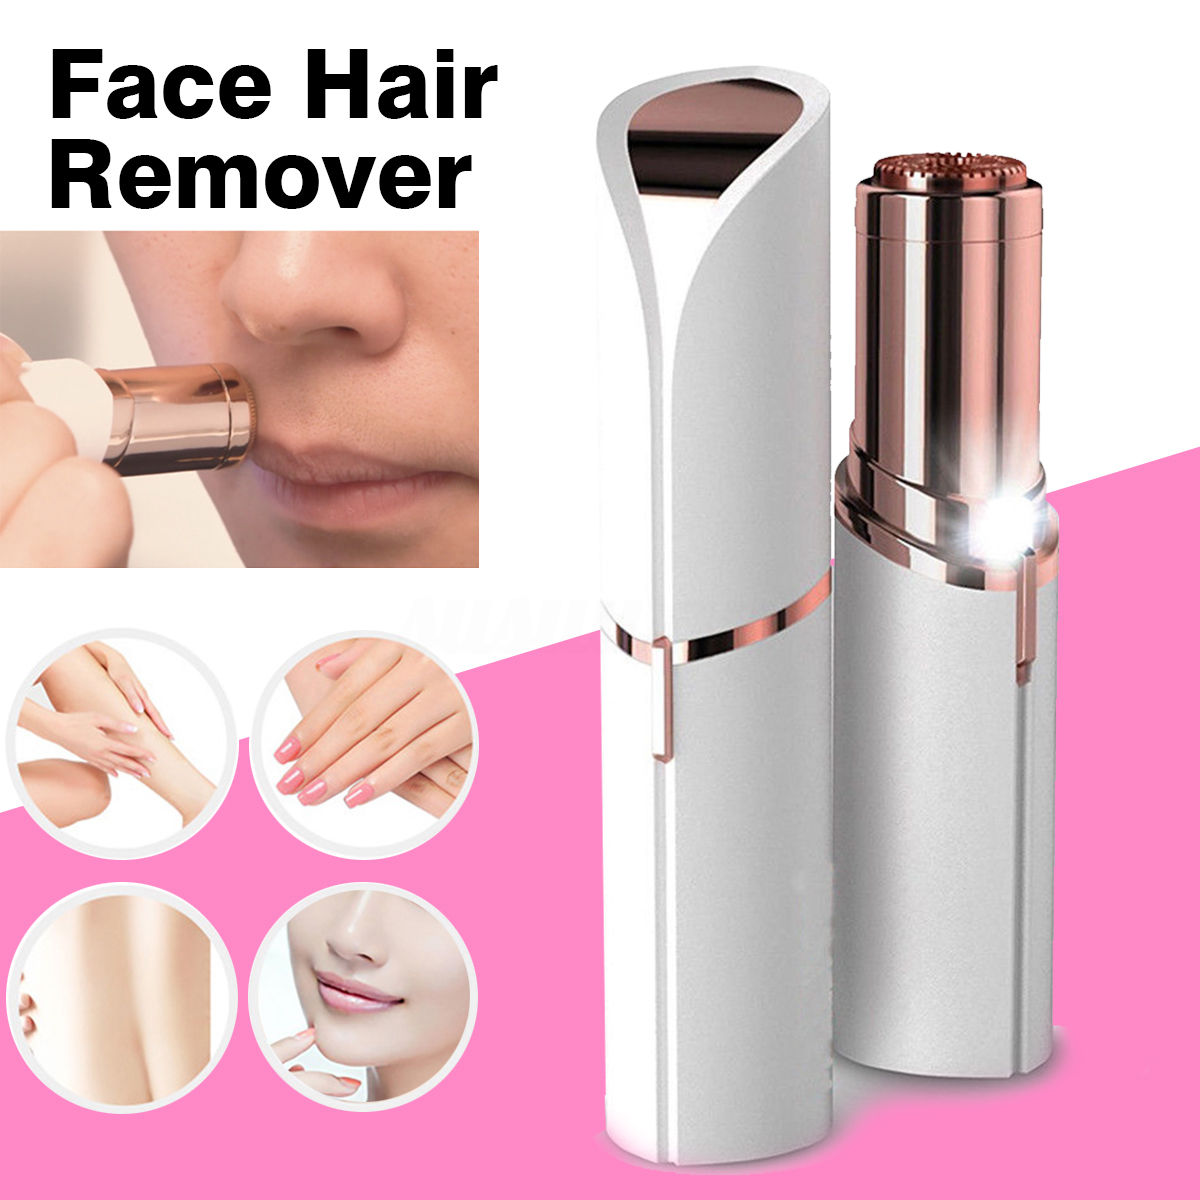 Face Facial Hair Remover